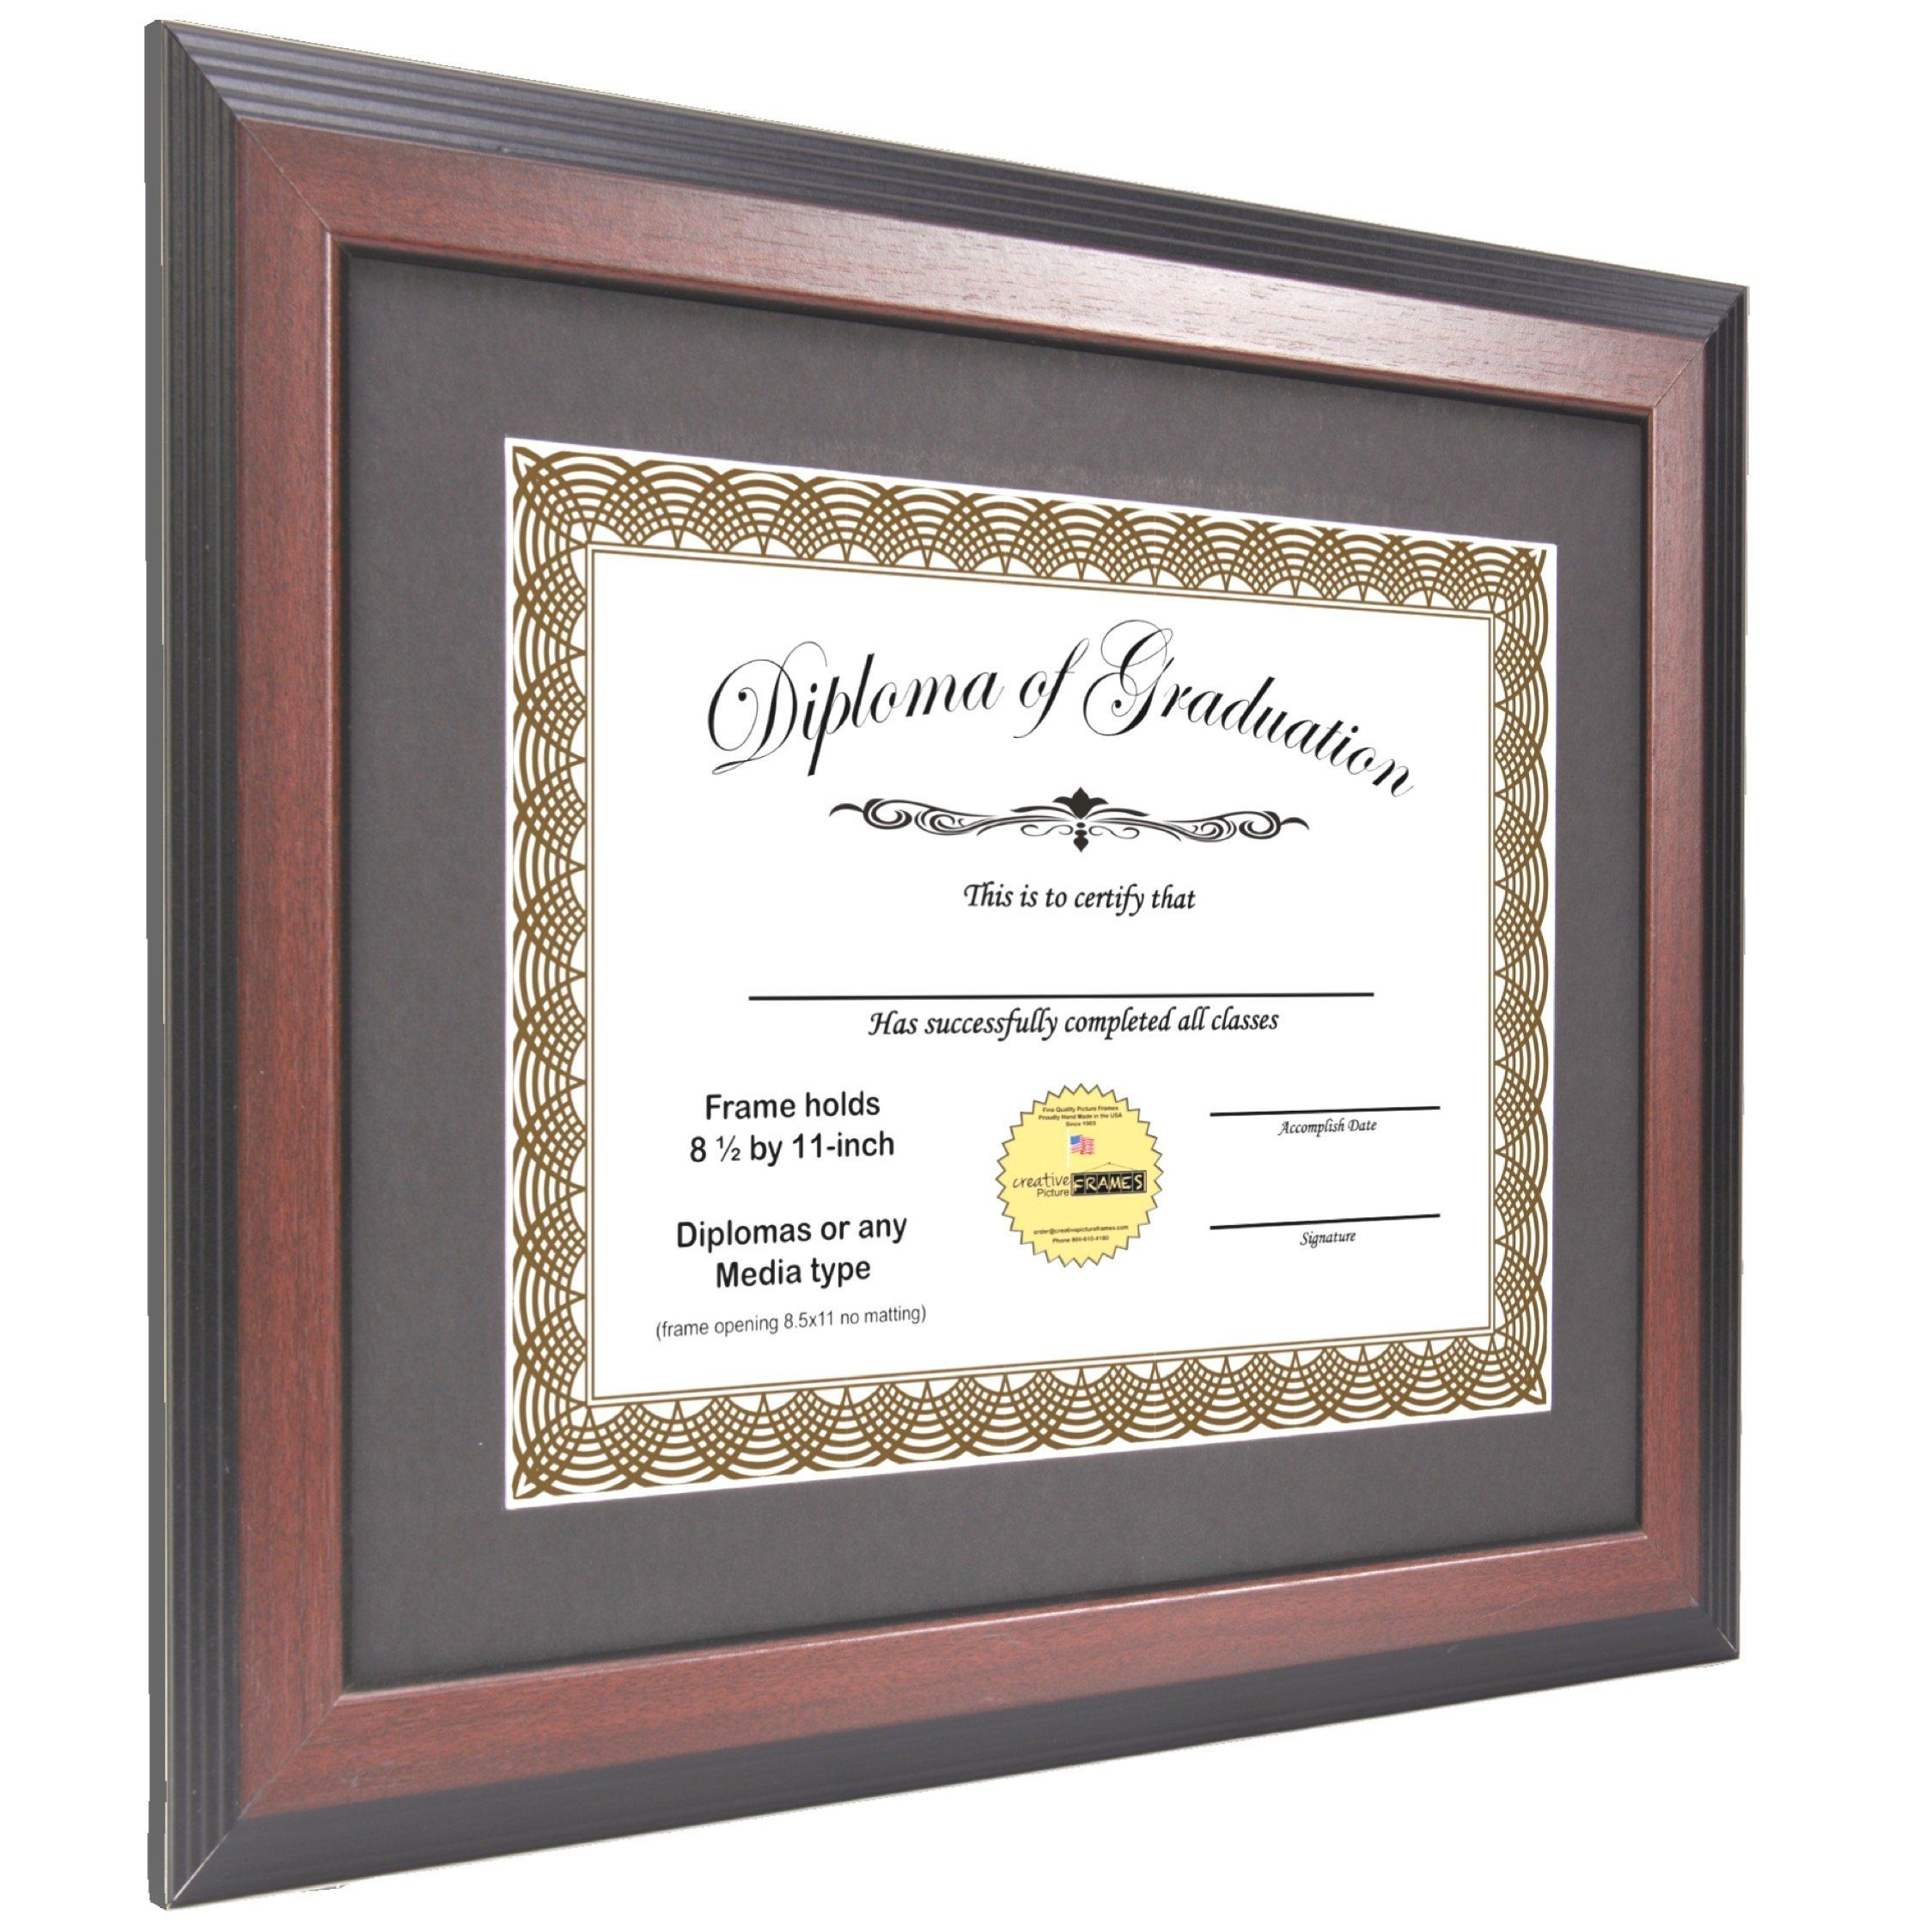 Creativepf 11x14mh Mahogany Diploma Frame With 11x14inch White Mat To Hold 8 5 By 11inch Graduation Documents W Stand And Diploma Frame Frame Document Frame